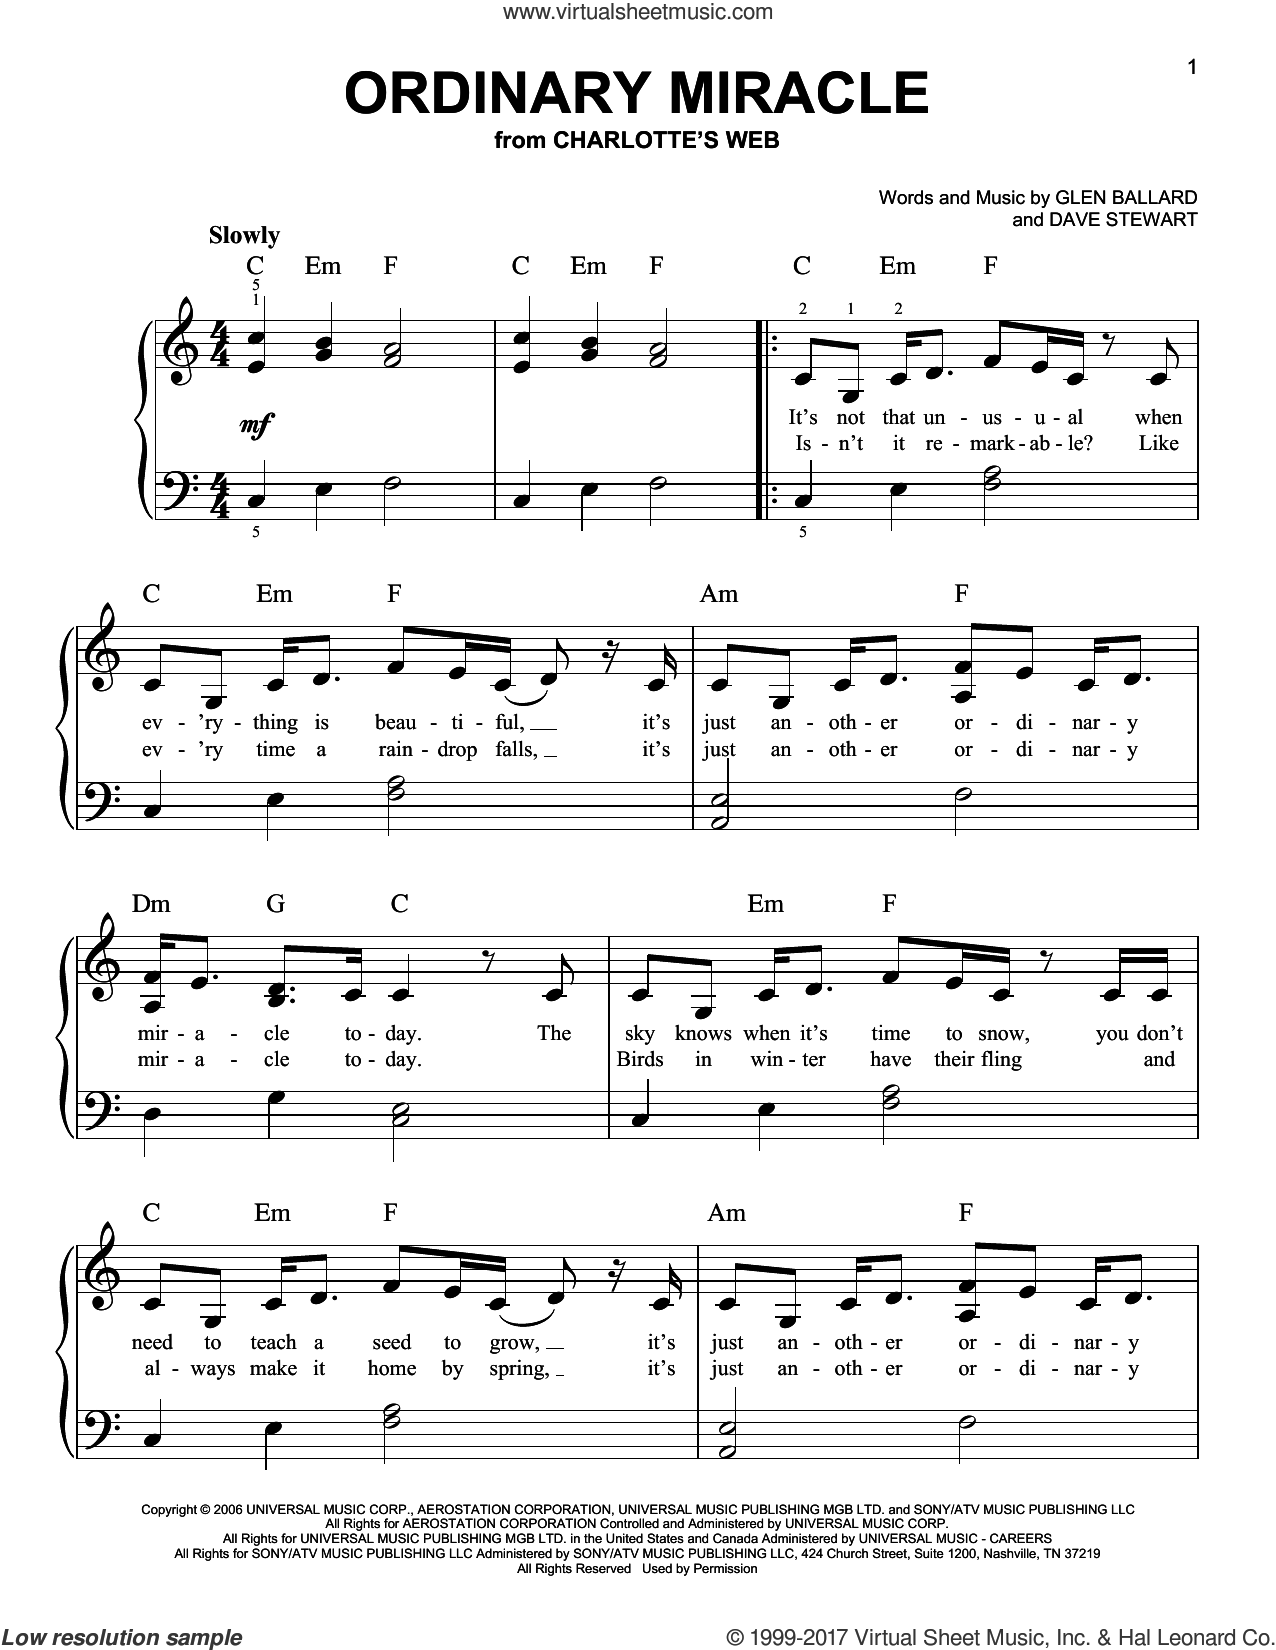 Ordinary Miracle sheet music for piano solo by Sarah McLachlan, Dave Stewart and Glen Ballard, easy